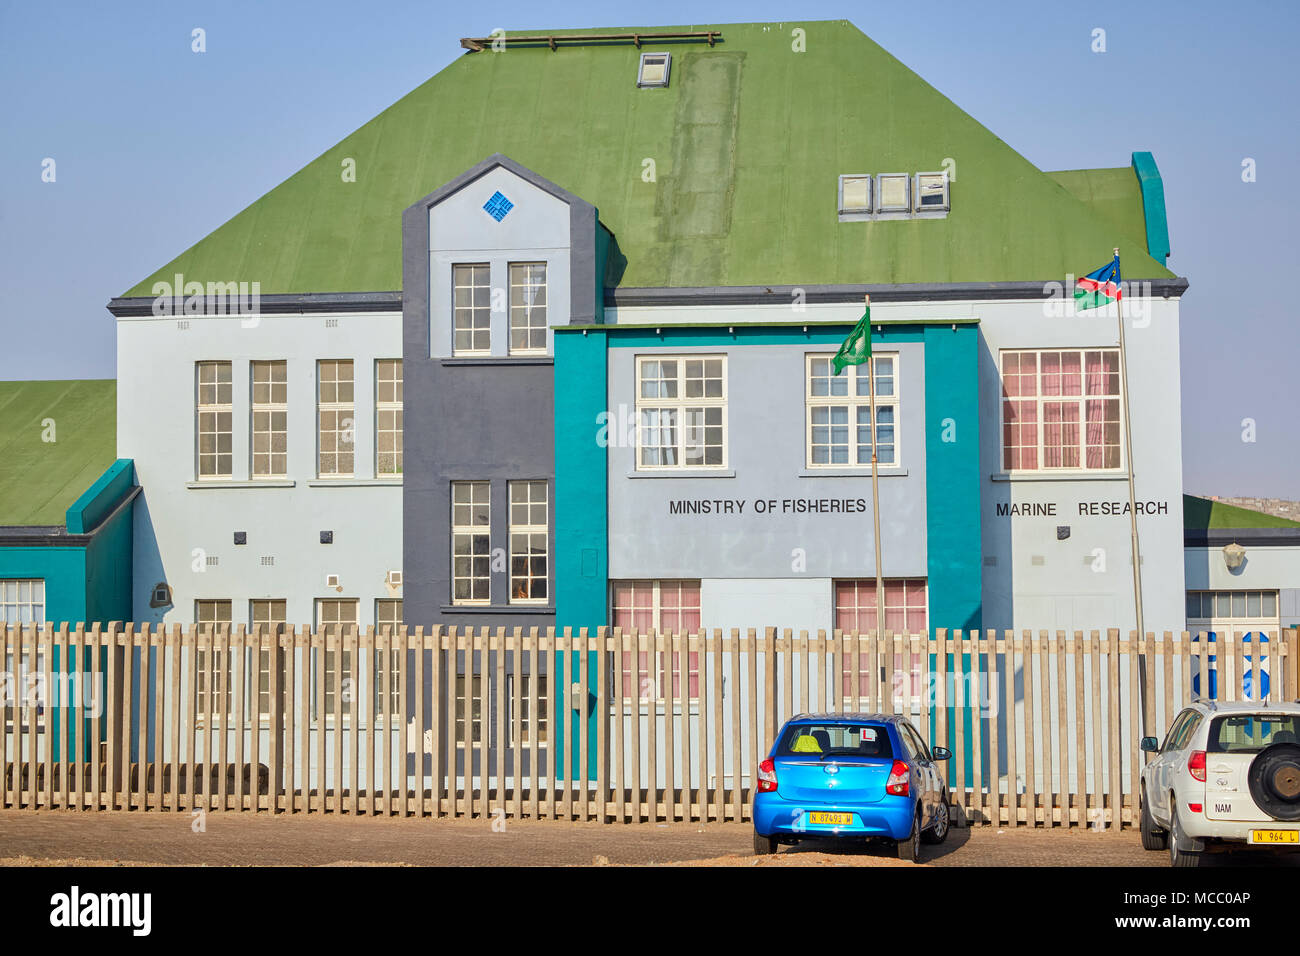 Ministry of Fisheries building in Luderitz, Namibia, Africa - Stock Image